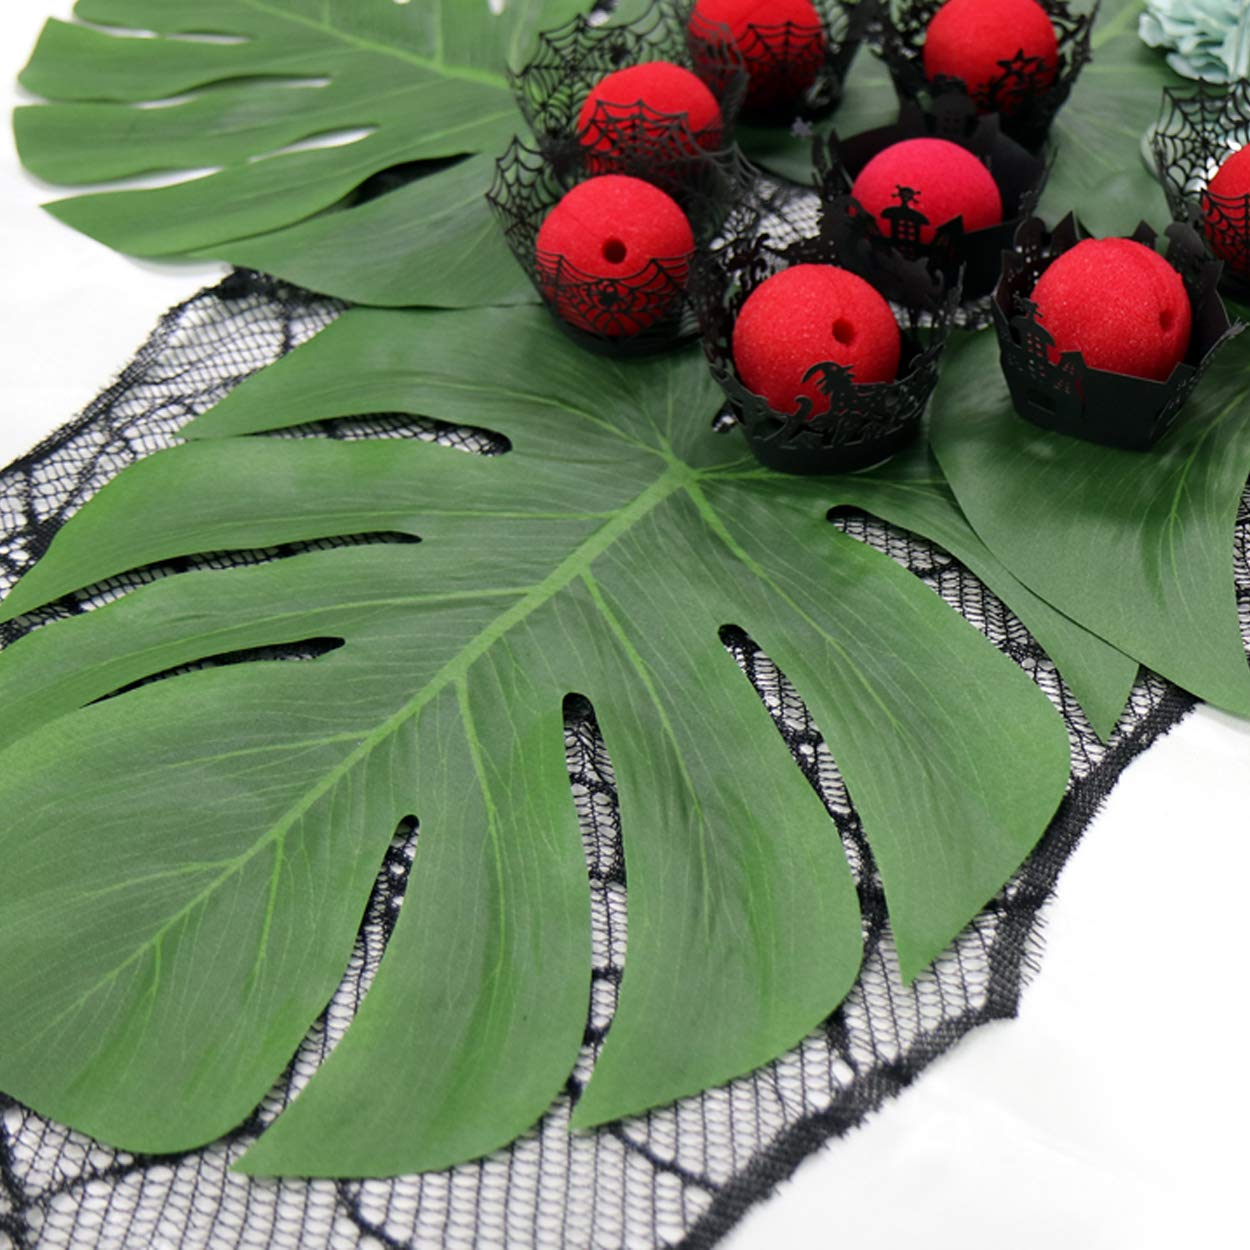 GuassLee Simulation Tropical Plam Leaves - 12pcs 14 Large Palm Leaves for Luau, Hawaiian, Jungle, Beach Party Decorations